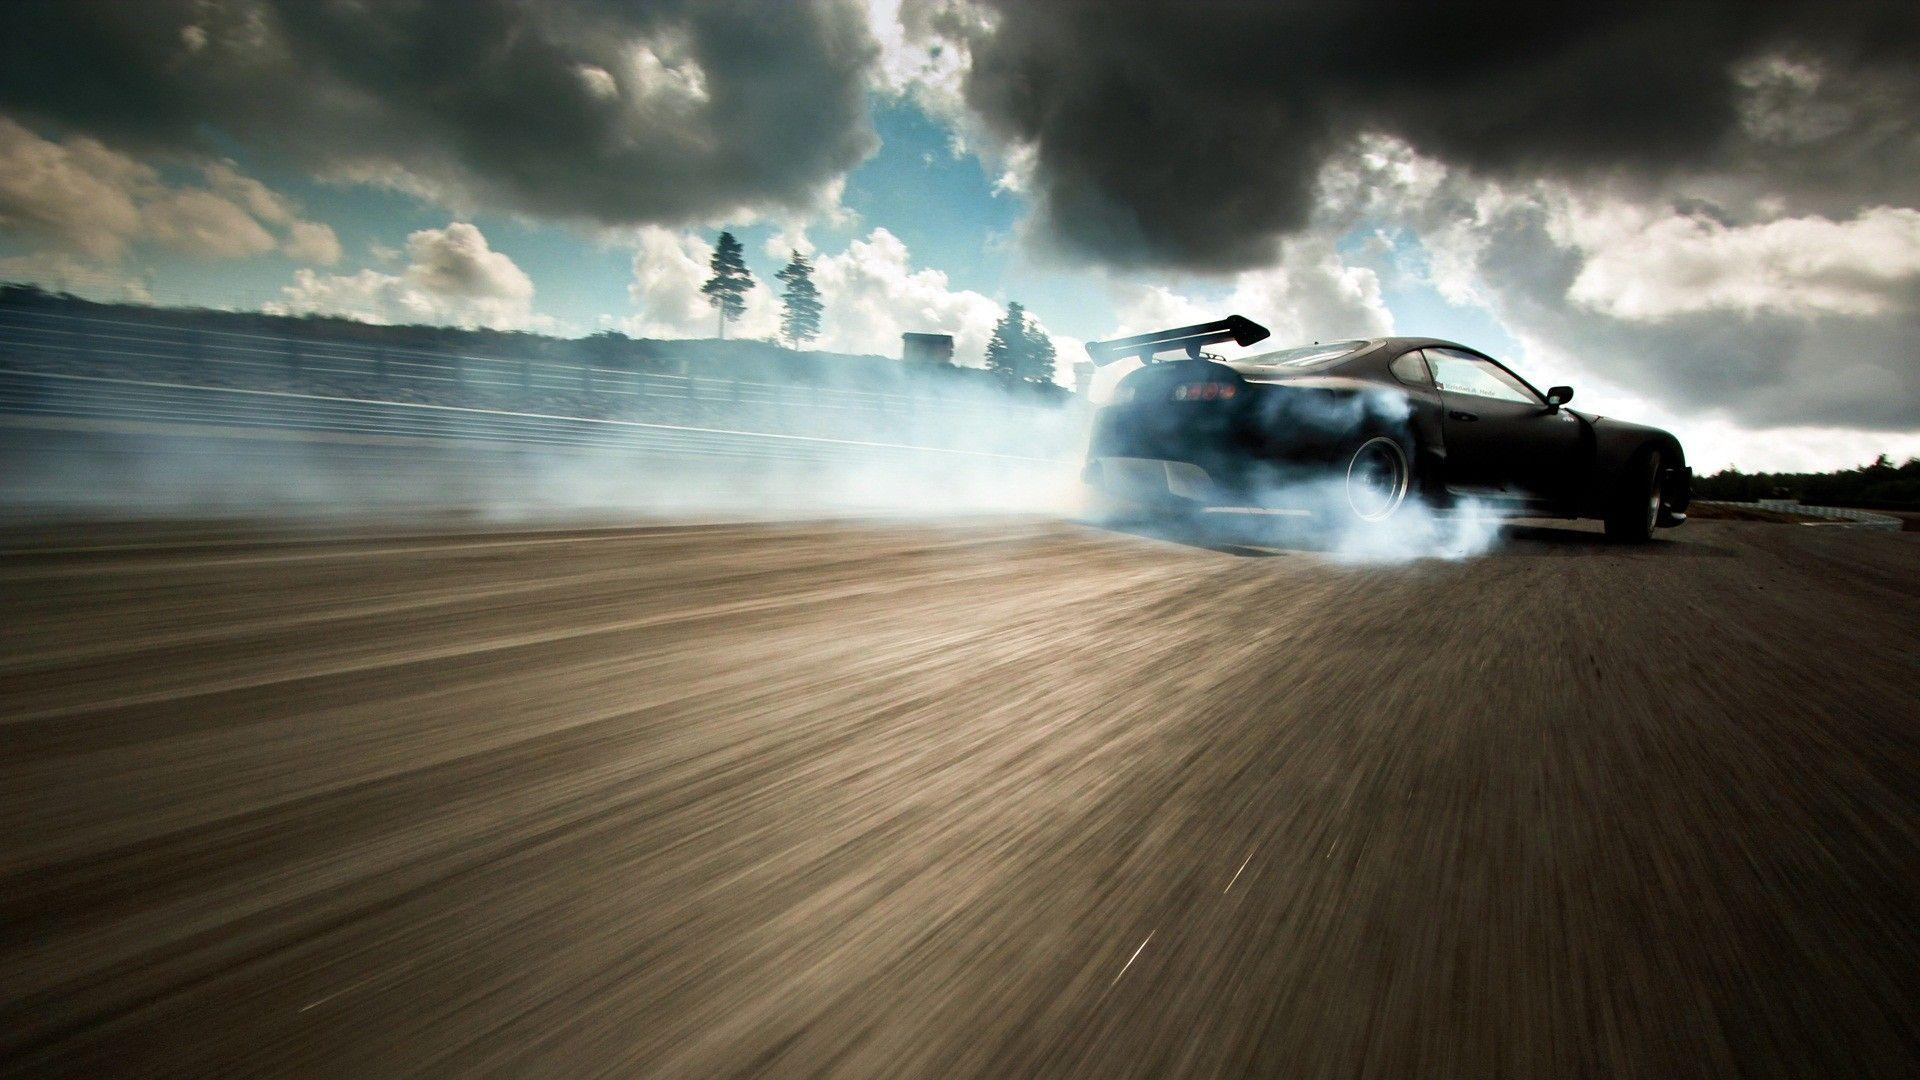 Car Drifting Wallpaper Hd wallpaper - 1262416